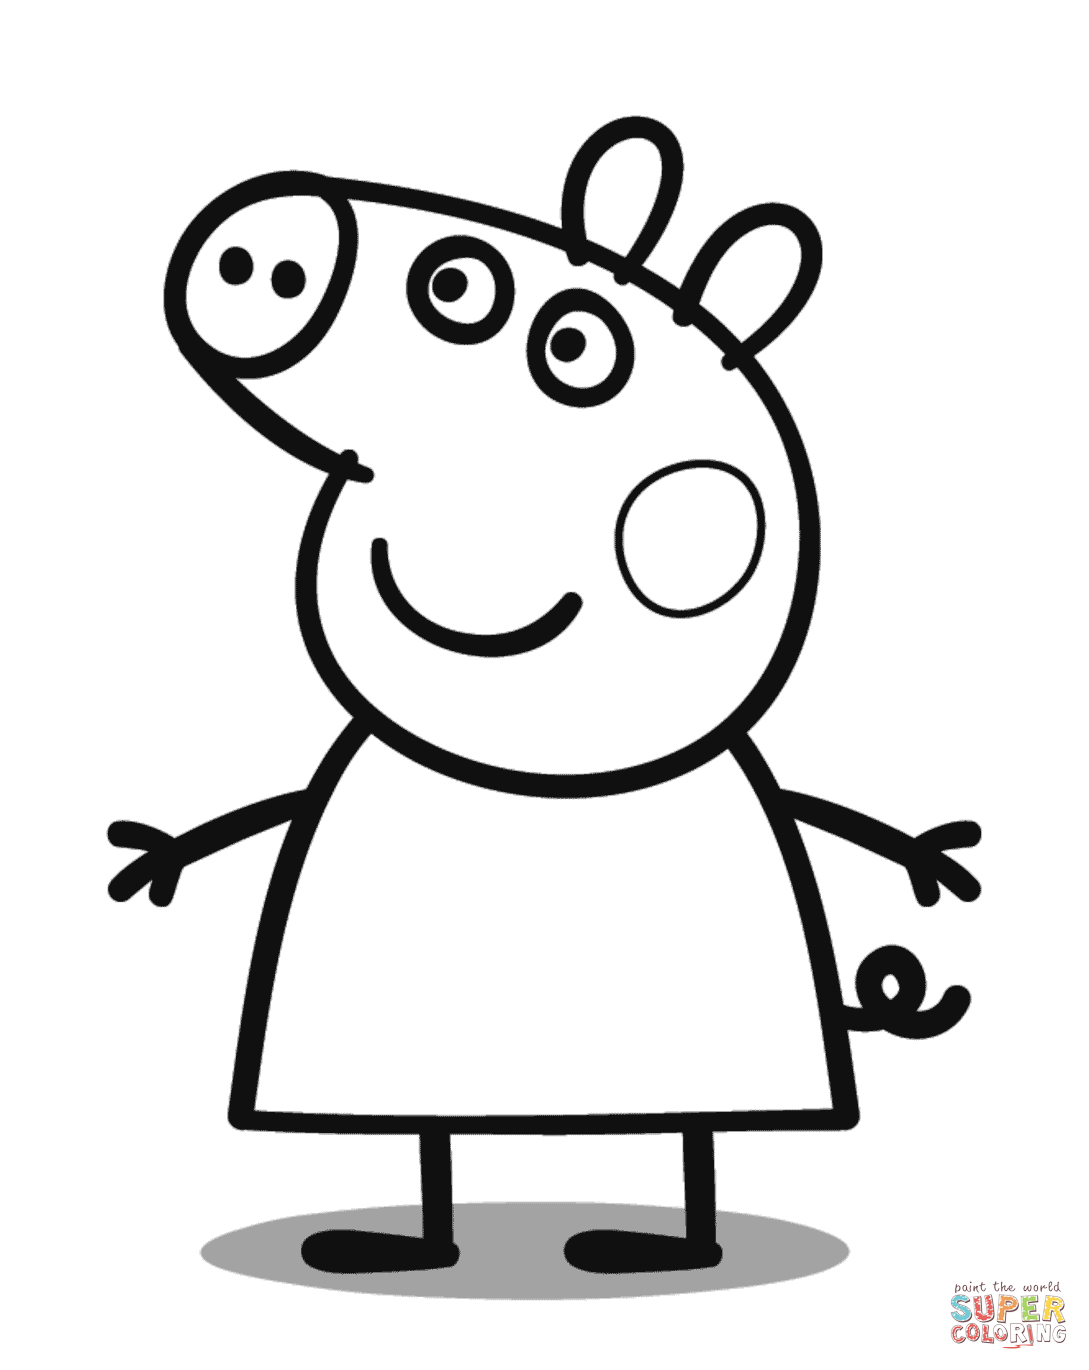 1089x1370 Peppa Pig Coloring Page Free Printable Coloring Pages